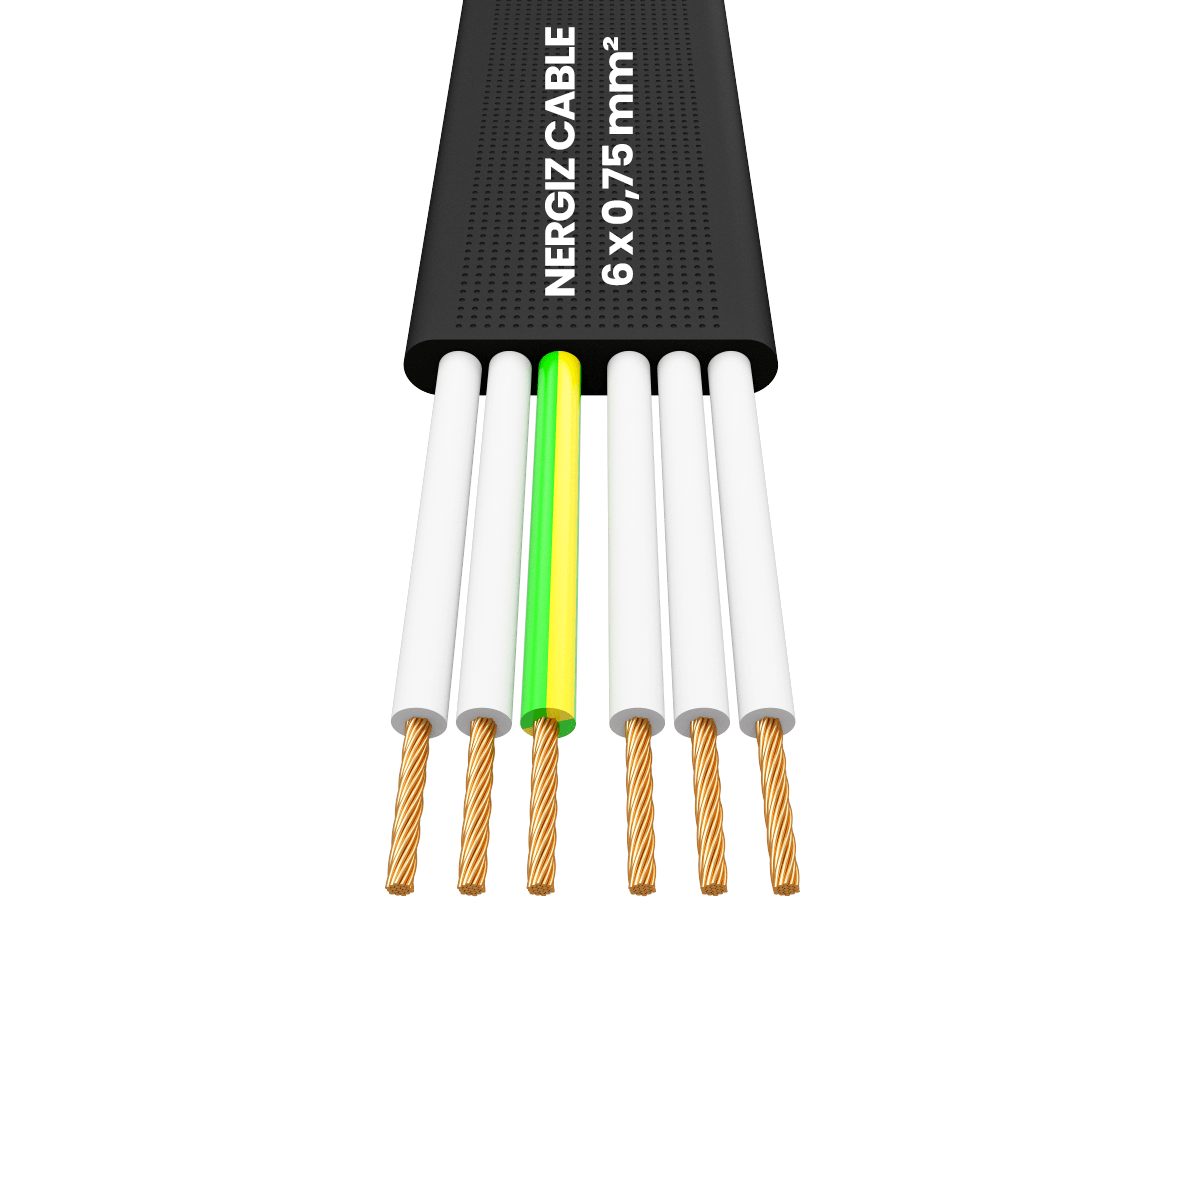 H05VVH6-F 6x0.75 mm² Flat Flexible Cable